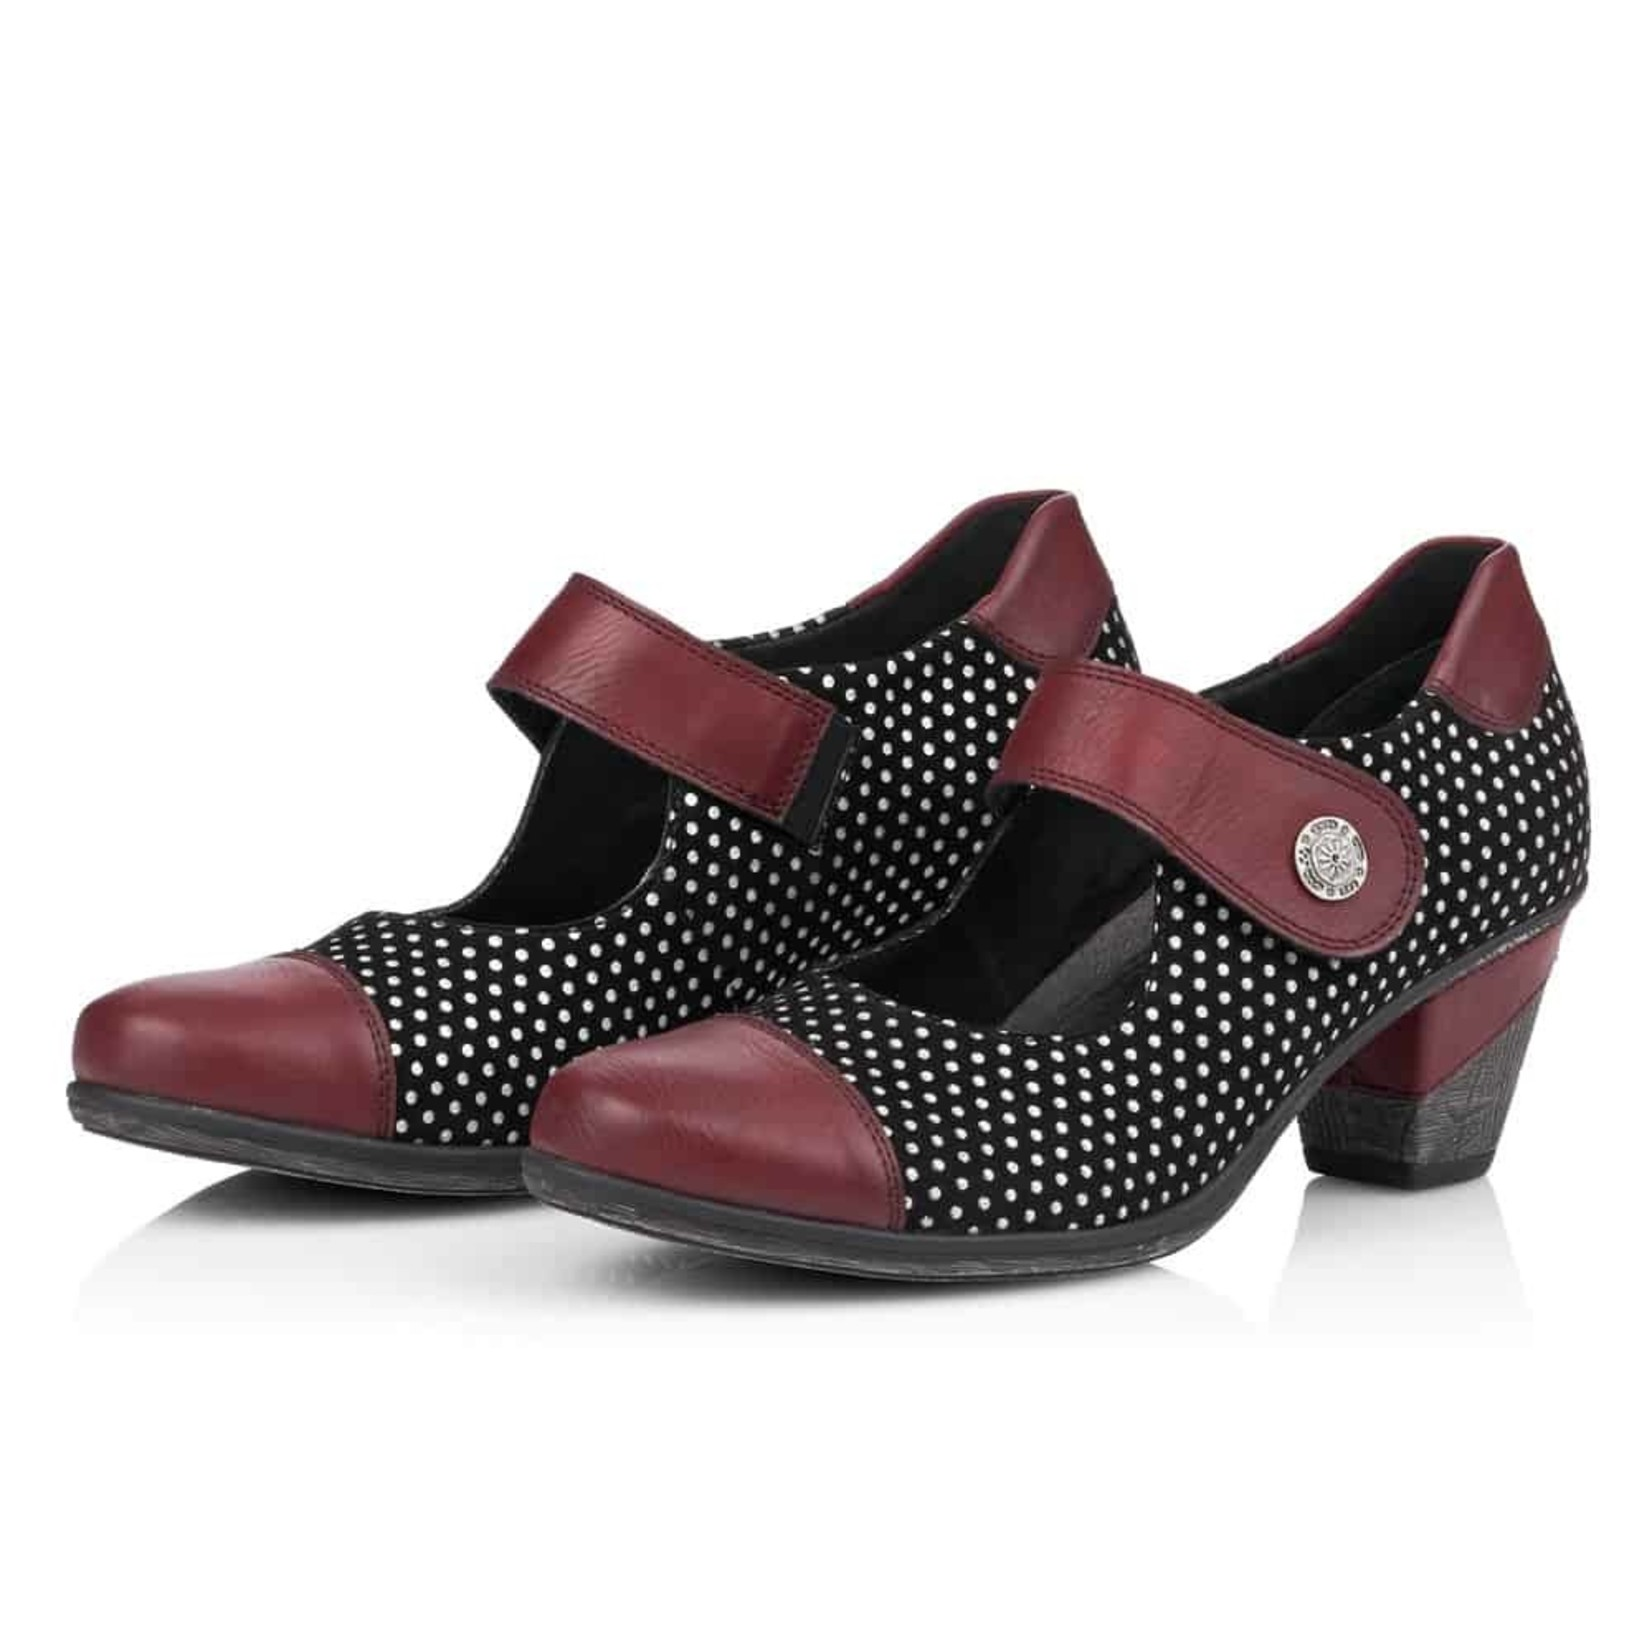 Remonte Remonte D8705-02 only size 41